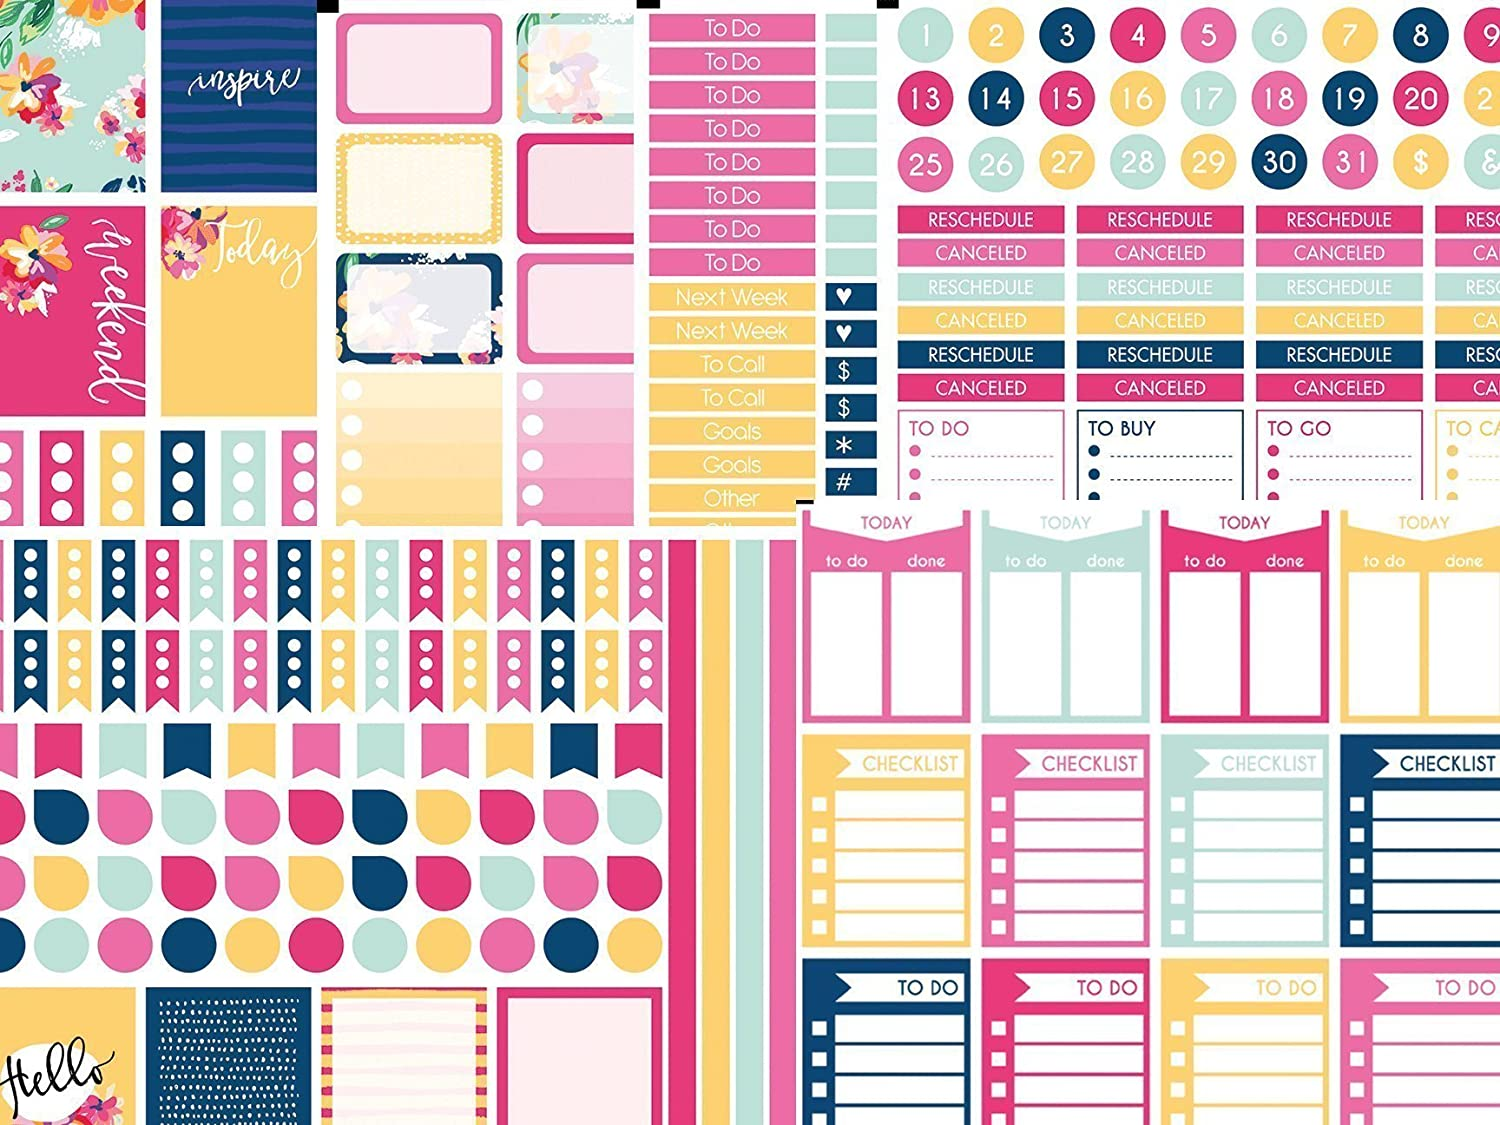 Life Planner Sticker Kit For Him 6 sheets of stickers on premium matte